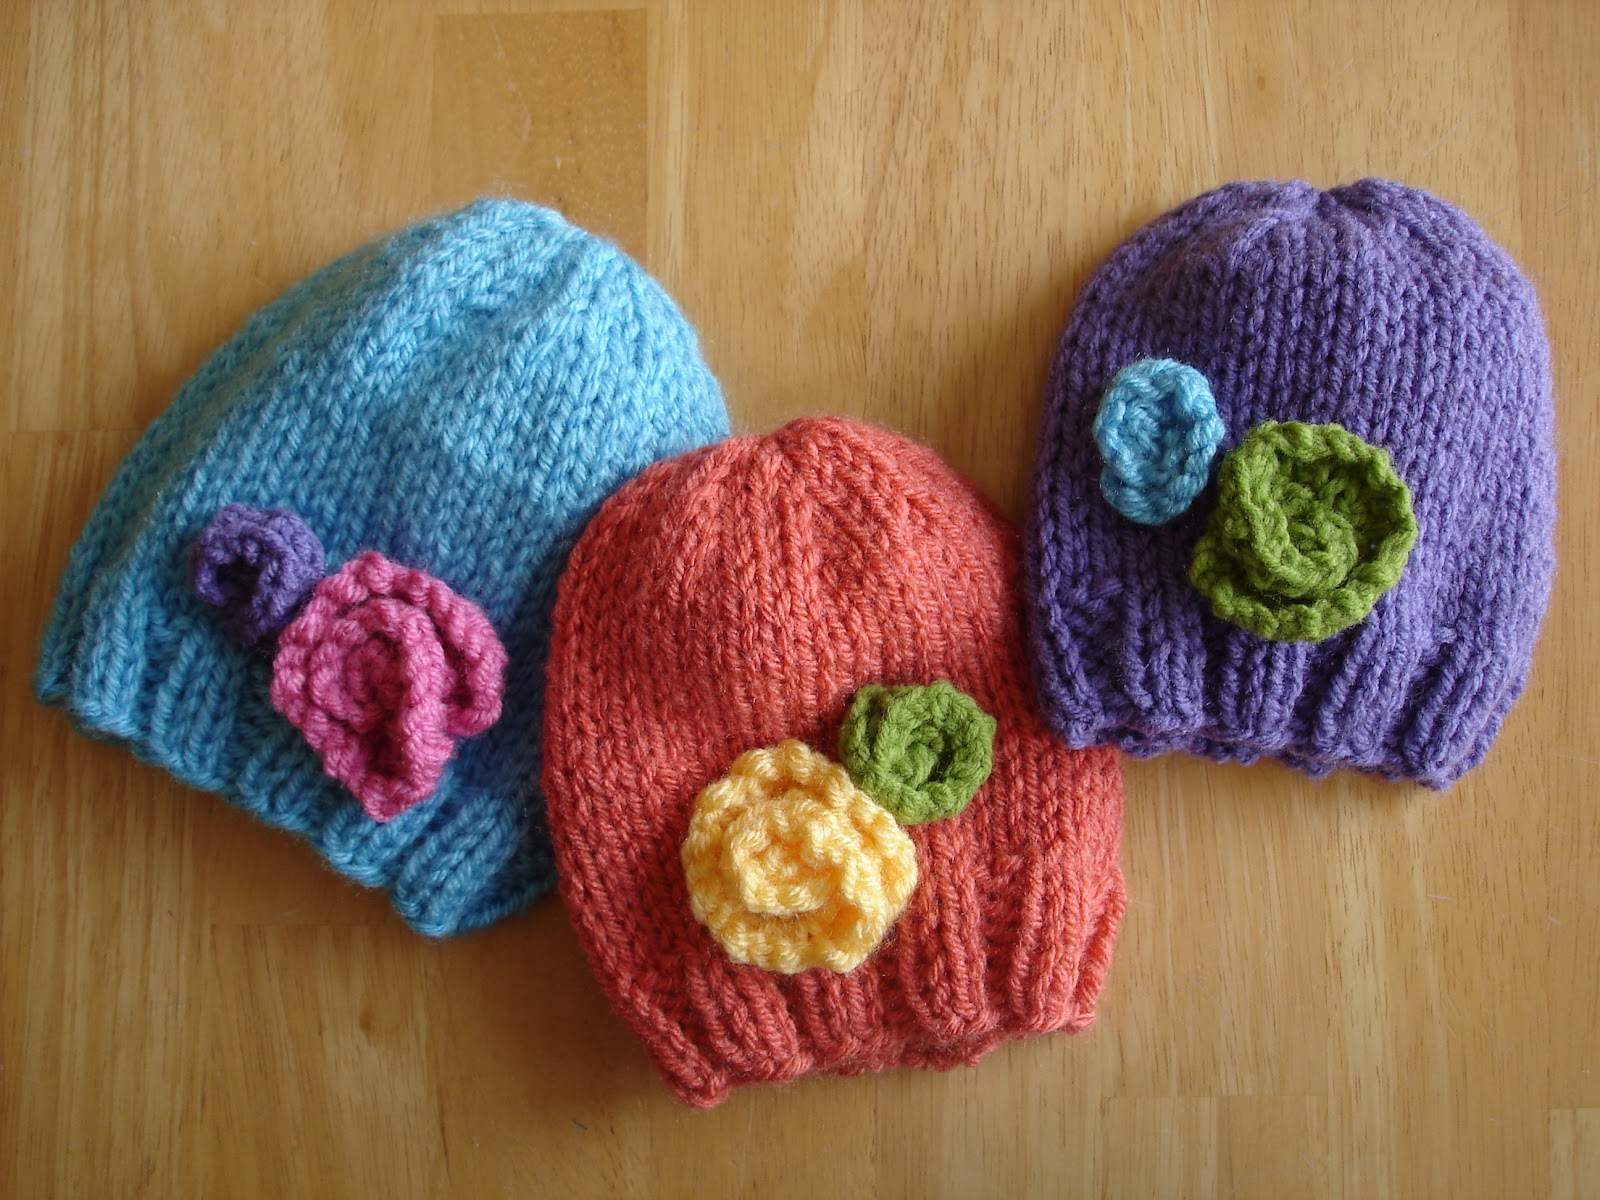 Knitting Pattern For Flowers On Hat : Baby Hat Knitting Pattern A Knitting Blog